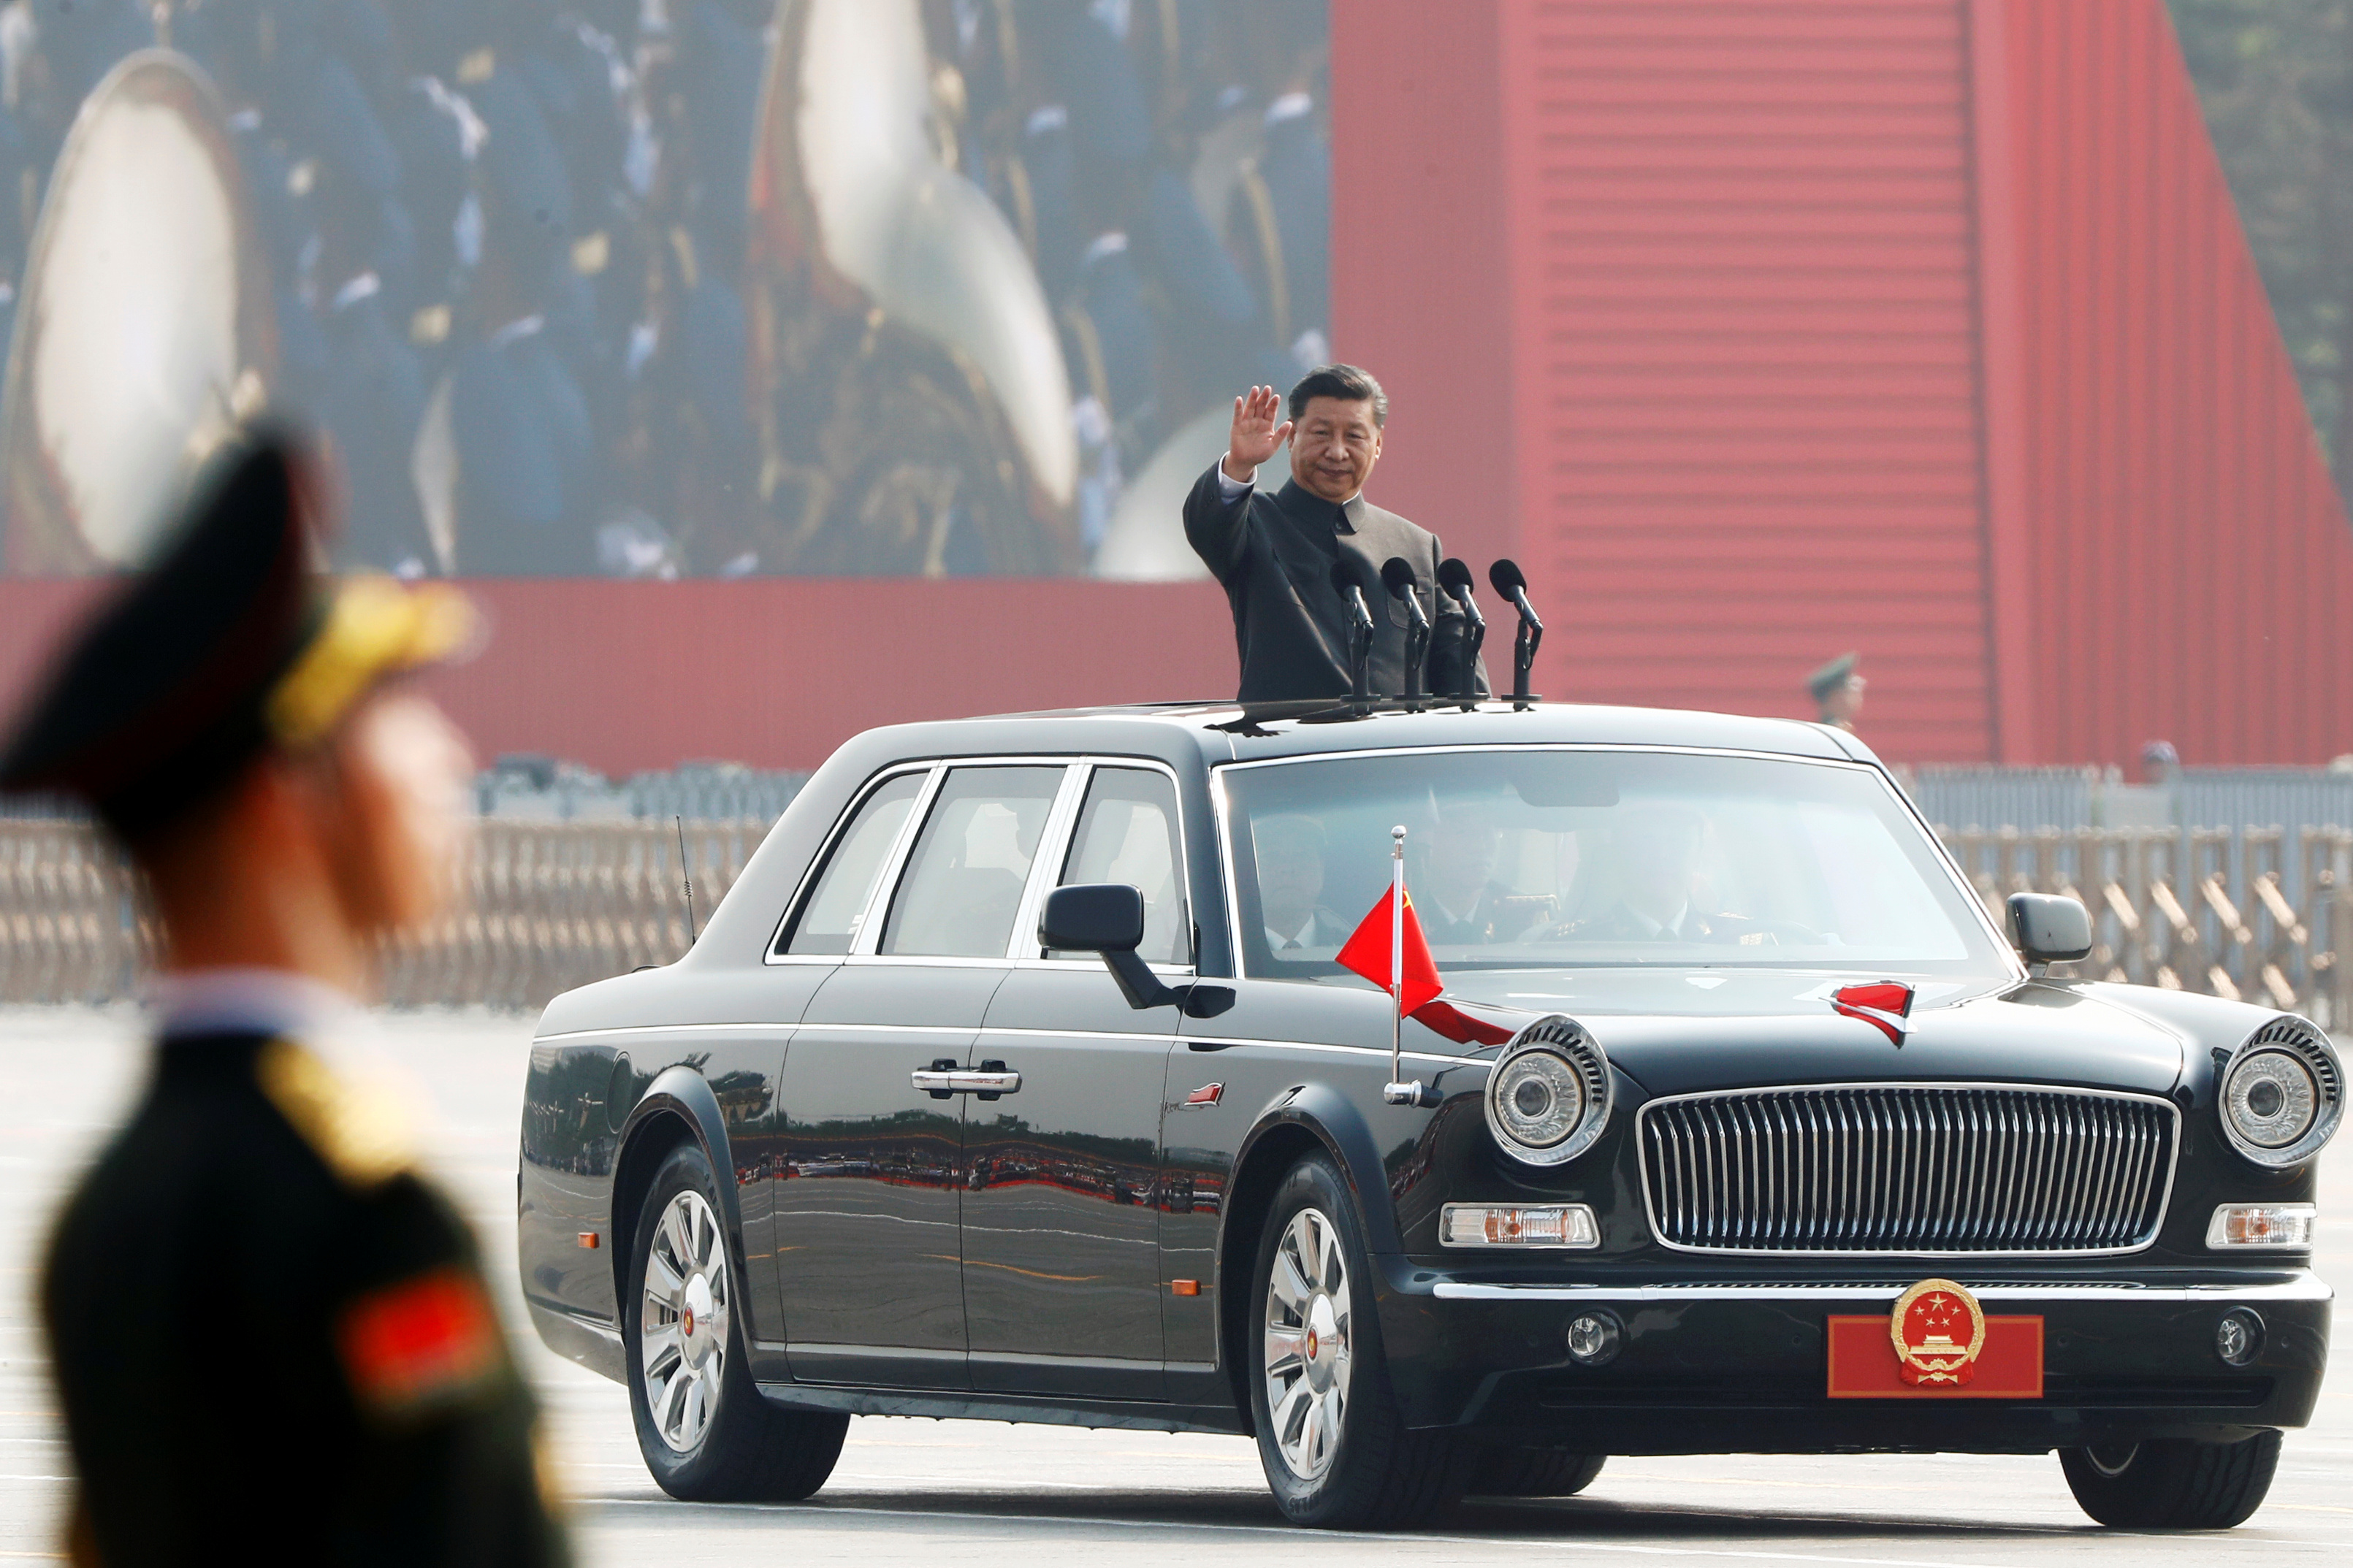 Chinese president Xi Jinping waves from a vehicle as he reviews the troops at the parade marking the 70th founding anniversary of the People's Republic of China in Beijing, China October 1, 2019.